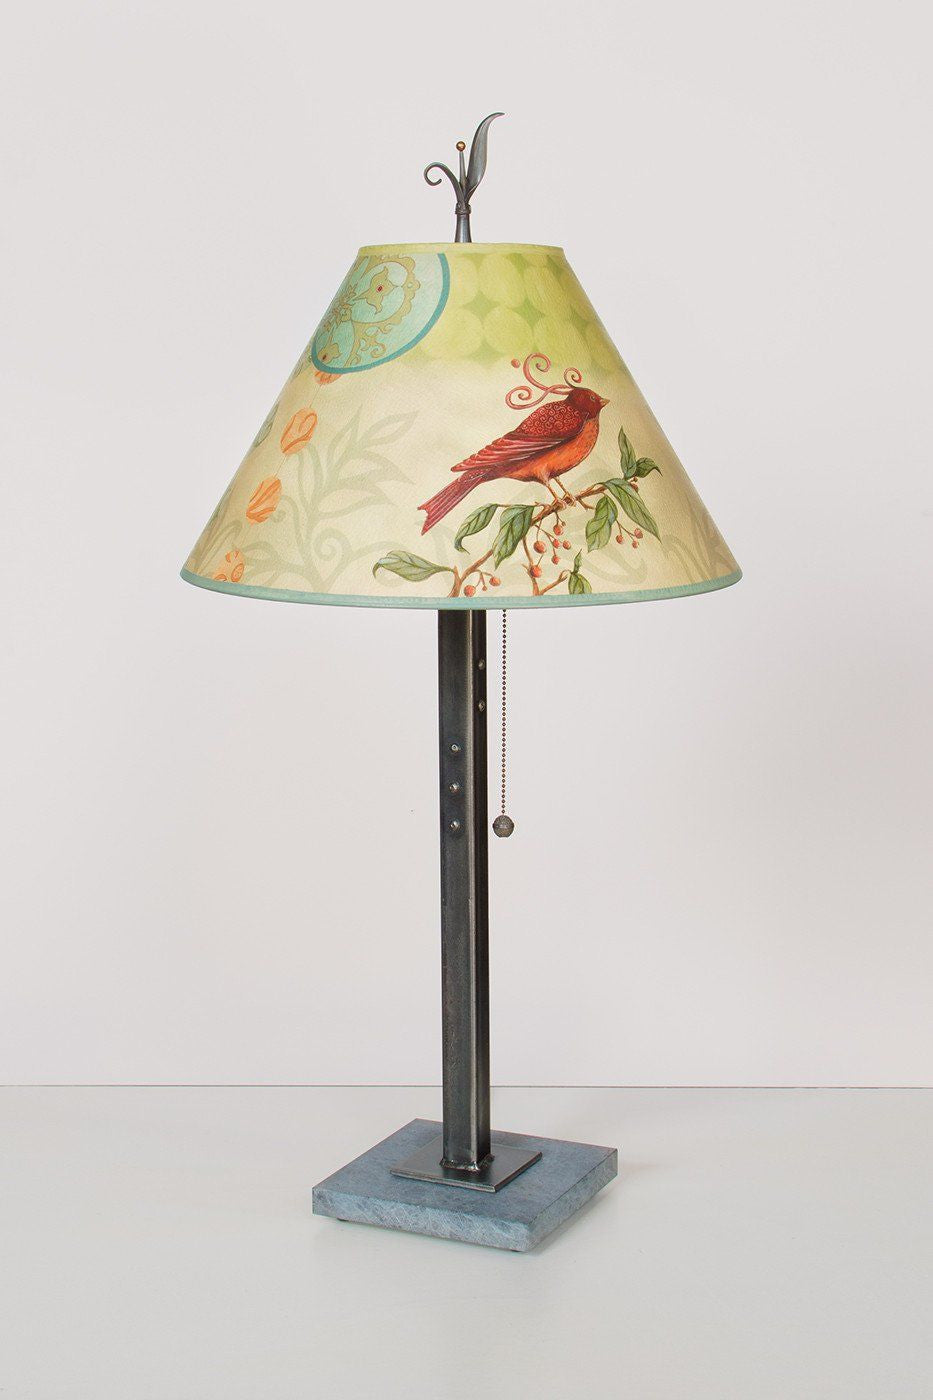 Steel Table Lamp on Marble with Medium Conical Shade in Birdscape - Lit